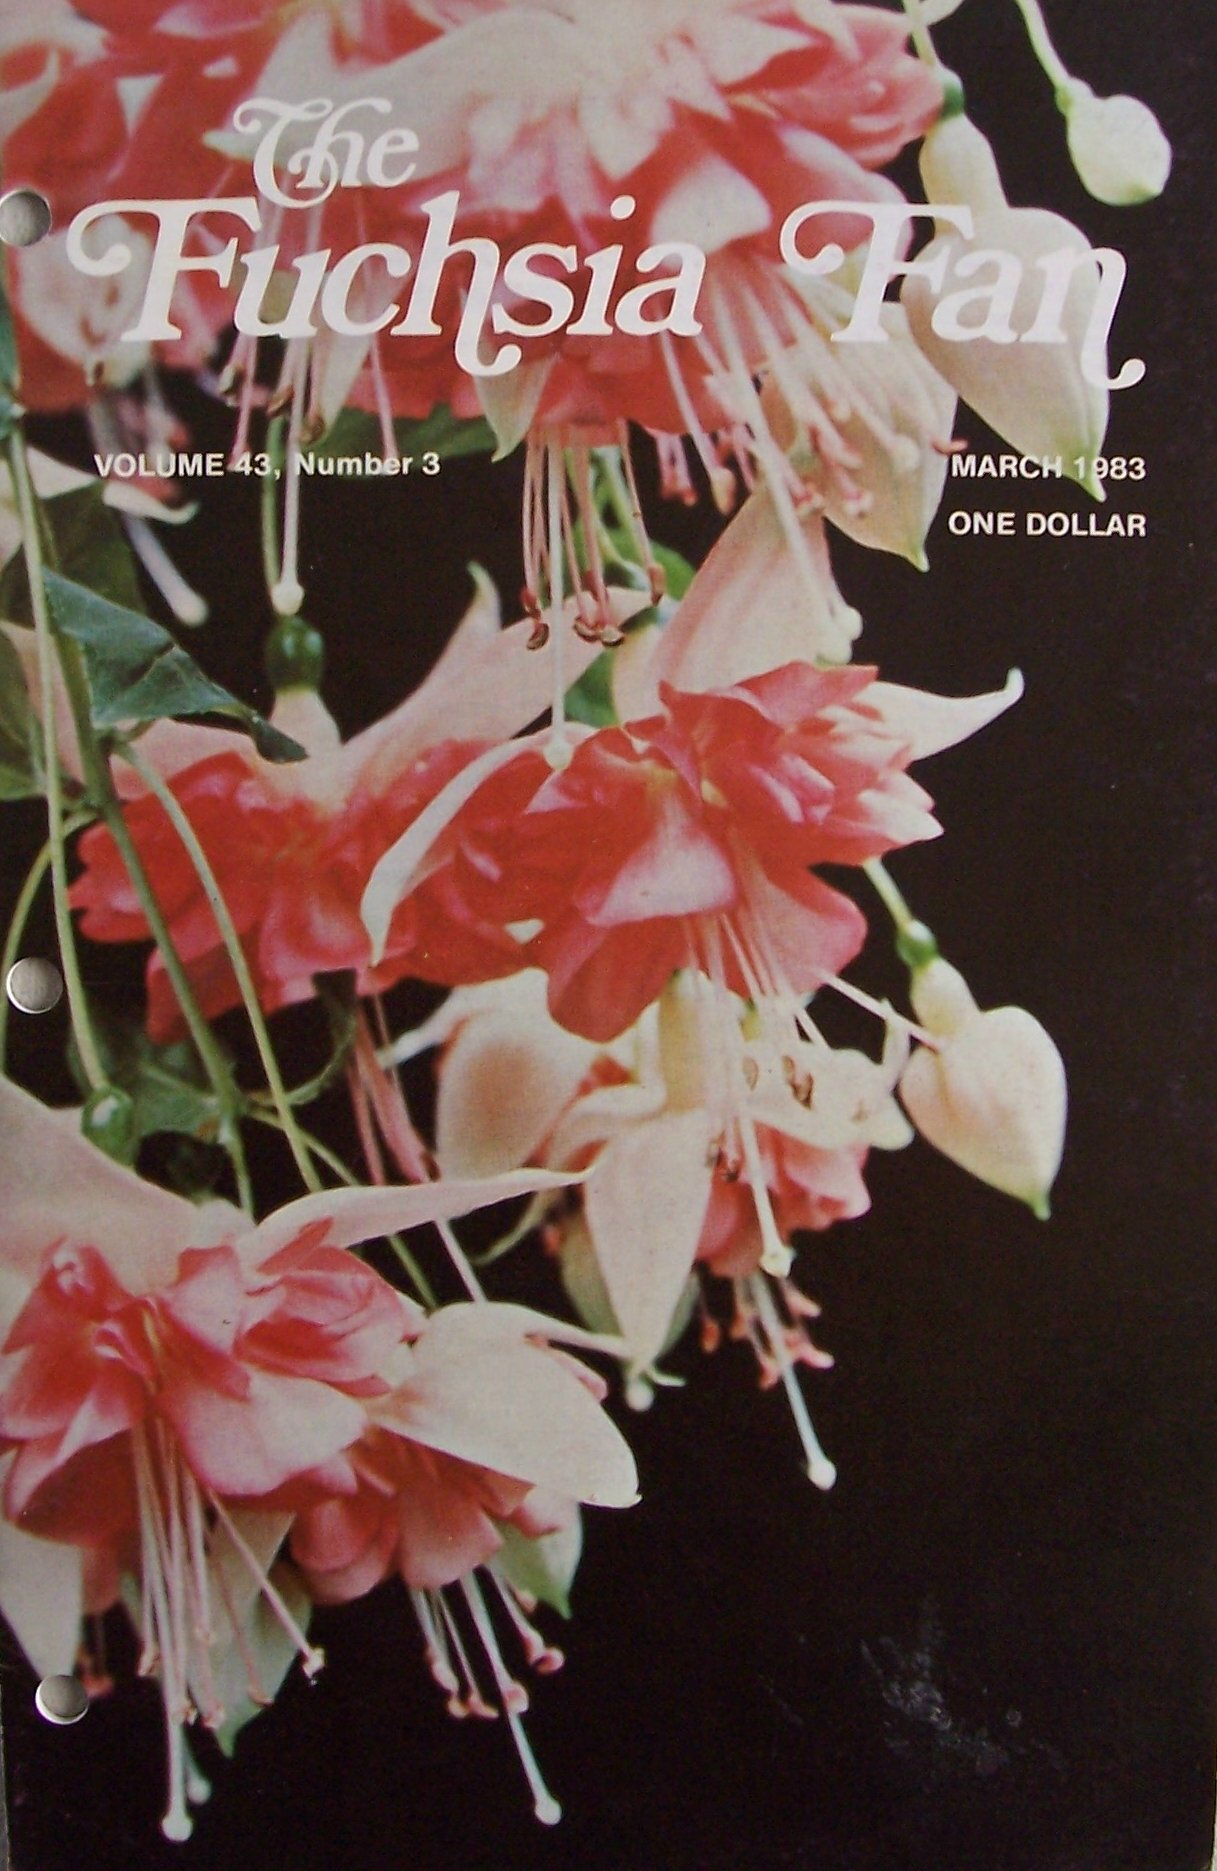 The Fuchsia Fan [ Vol. 43 No. 3, Mar. 1983 ] Single Monthly Issue (cover features Applause, Vol. 43 No. 3)